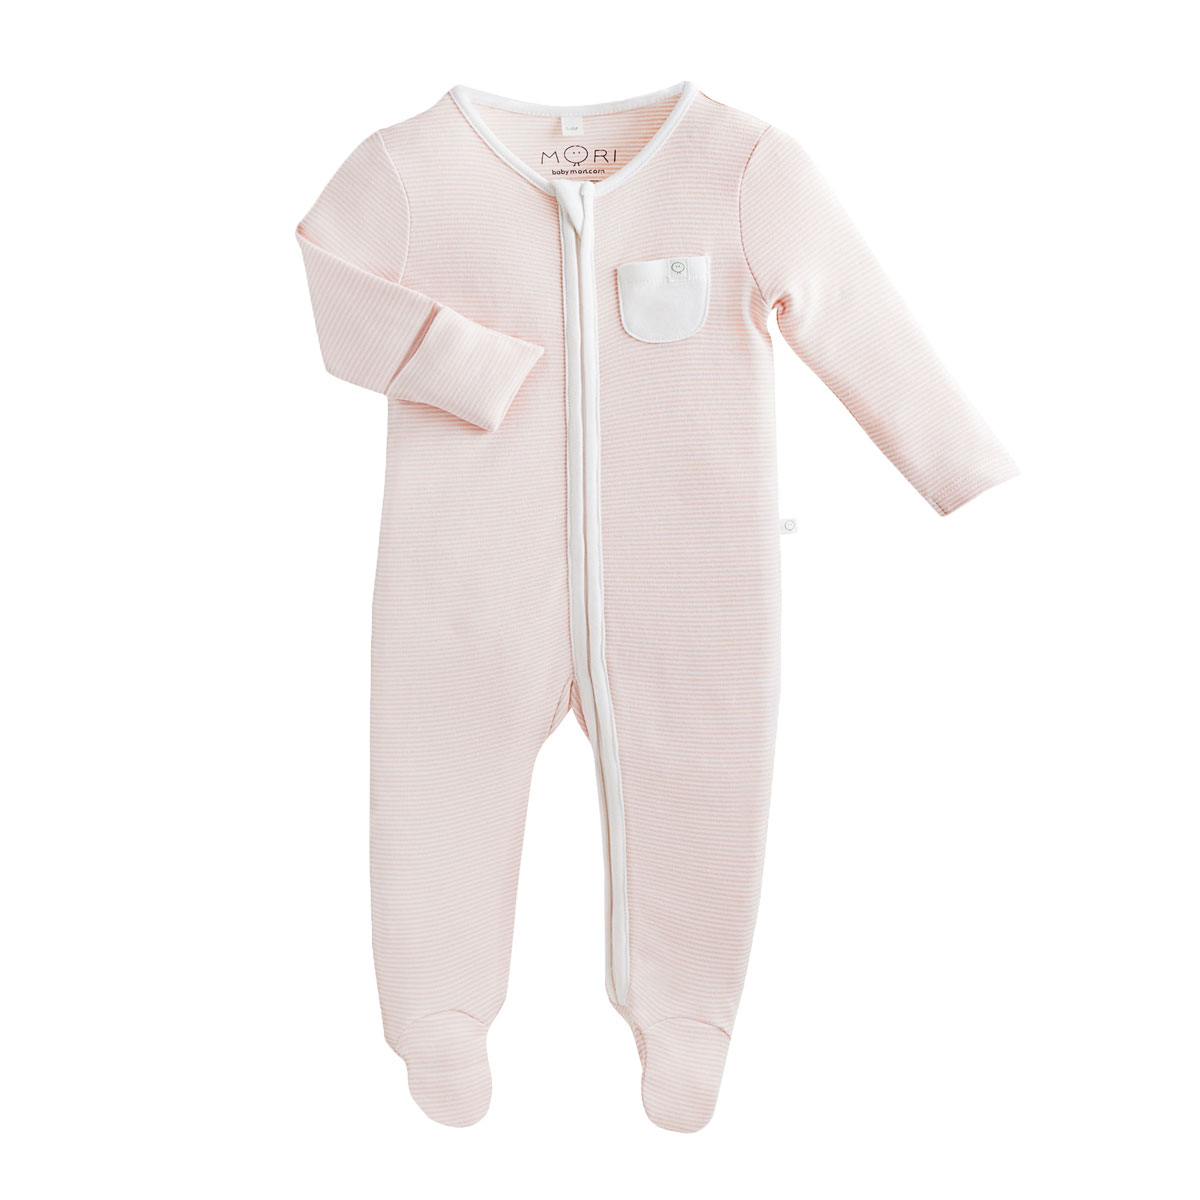 Mori Zip Up Sleepsuit in Blush Stripe